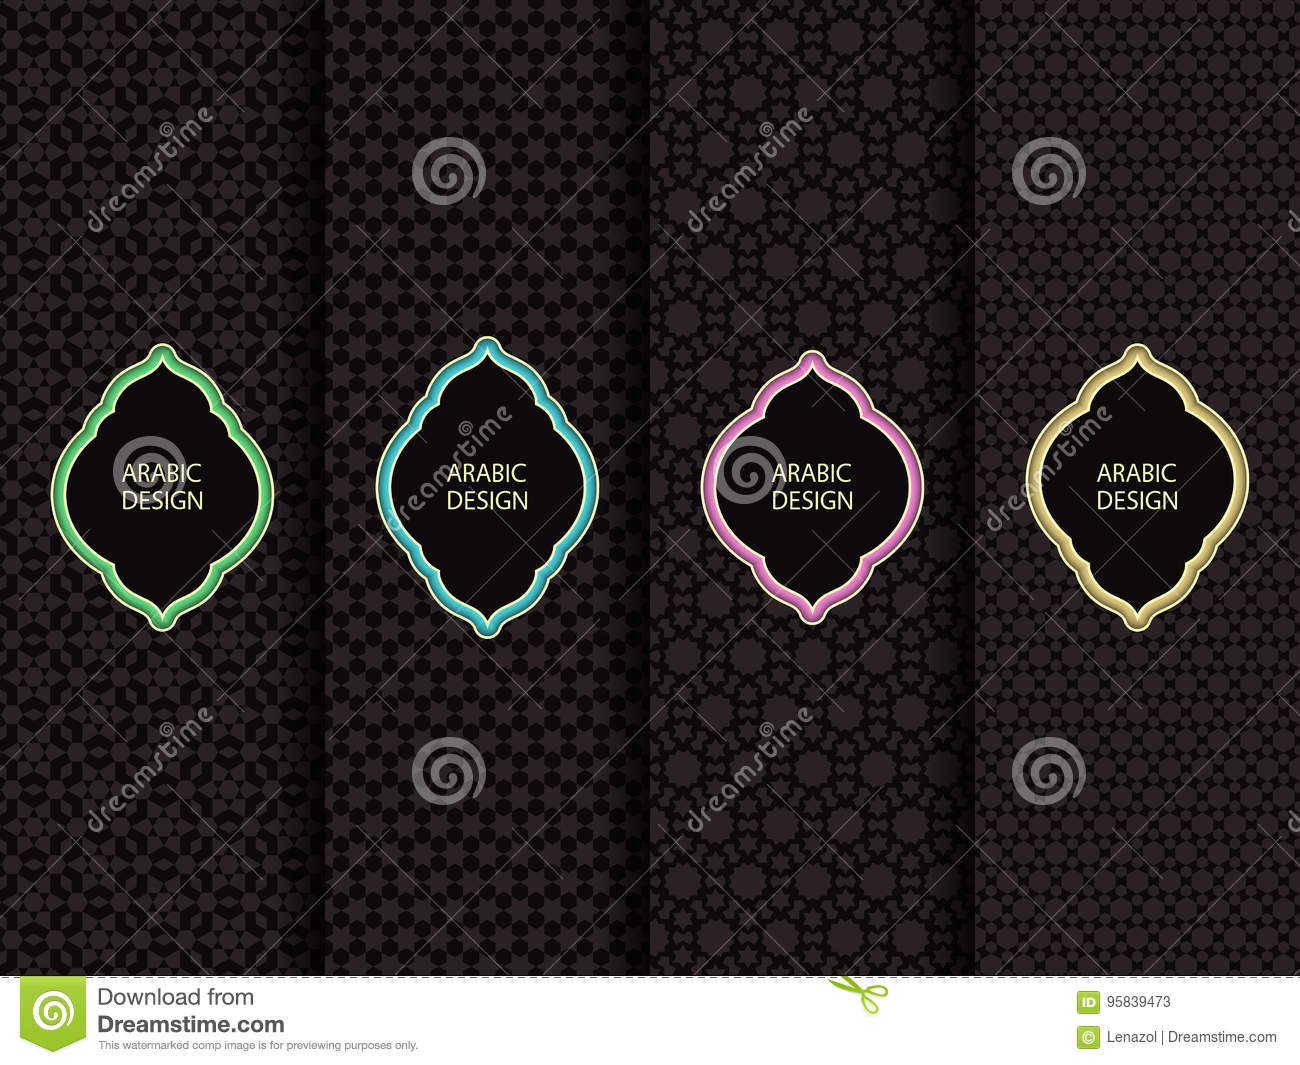 Vector Set With Four Traditional Geometric Arabic Patterns And